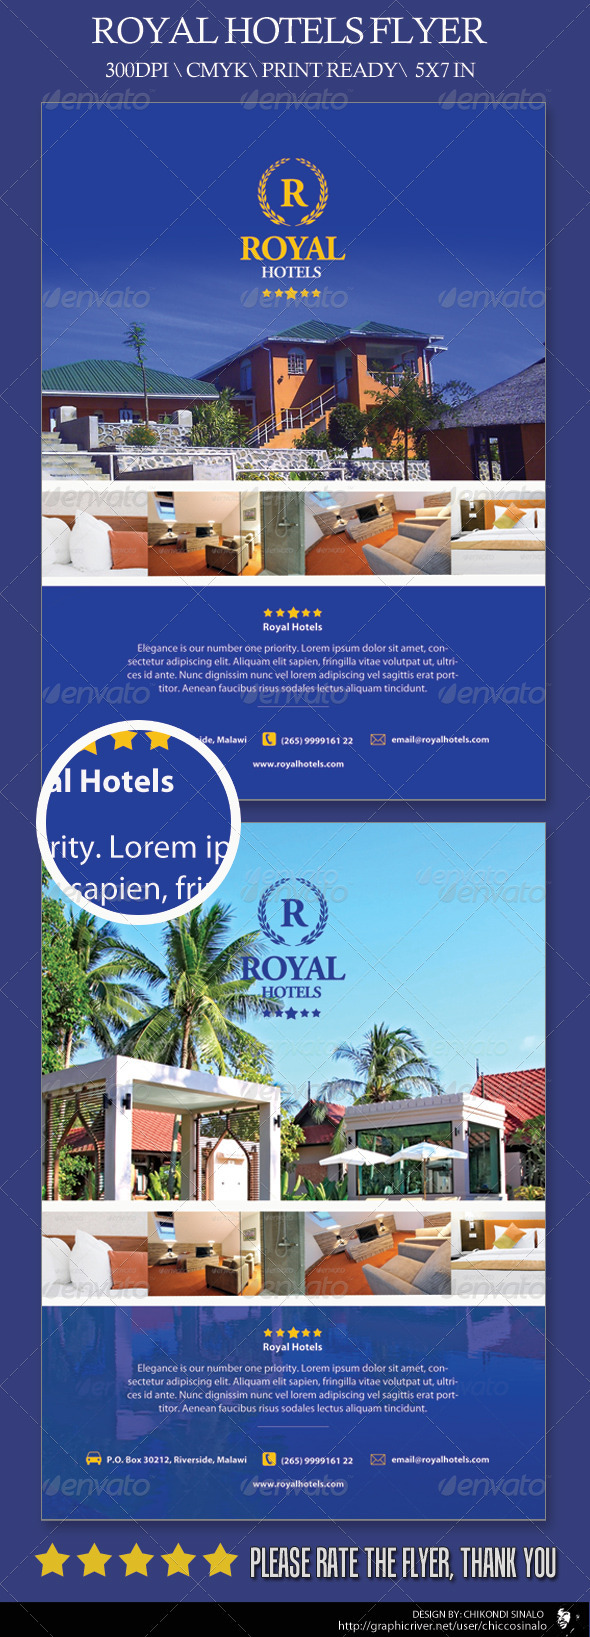 Royal Hotels Flyer Template - Corporate Flyers